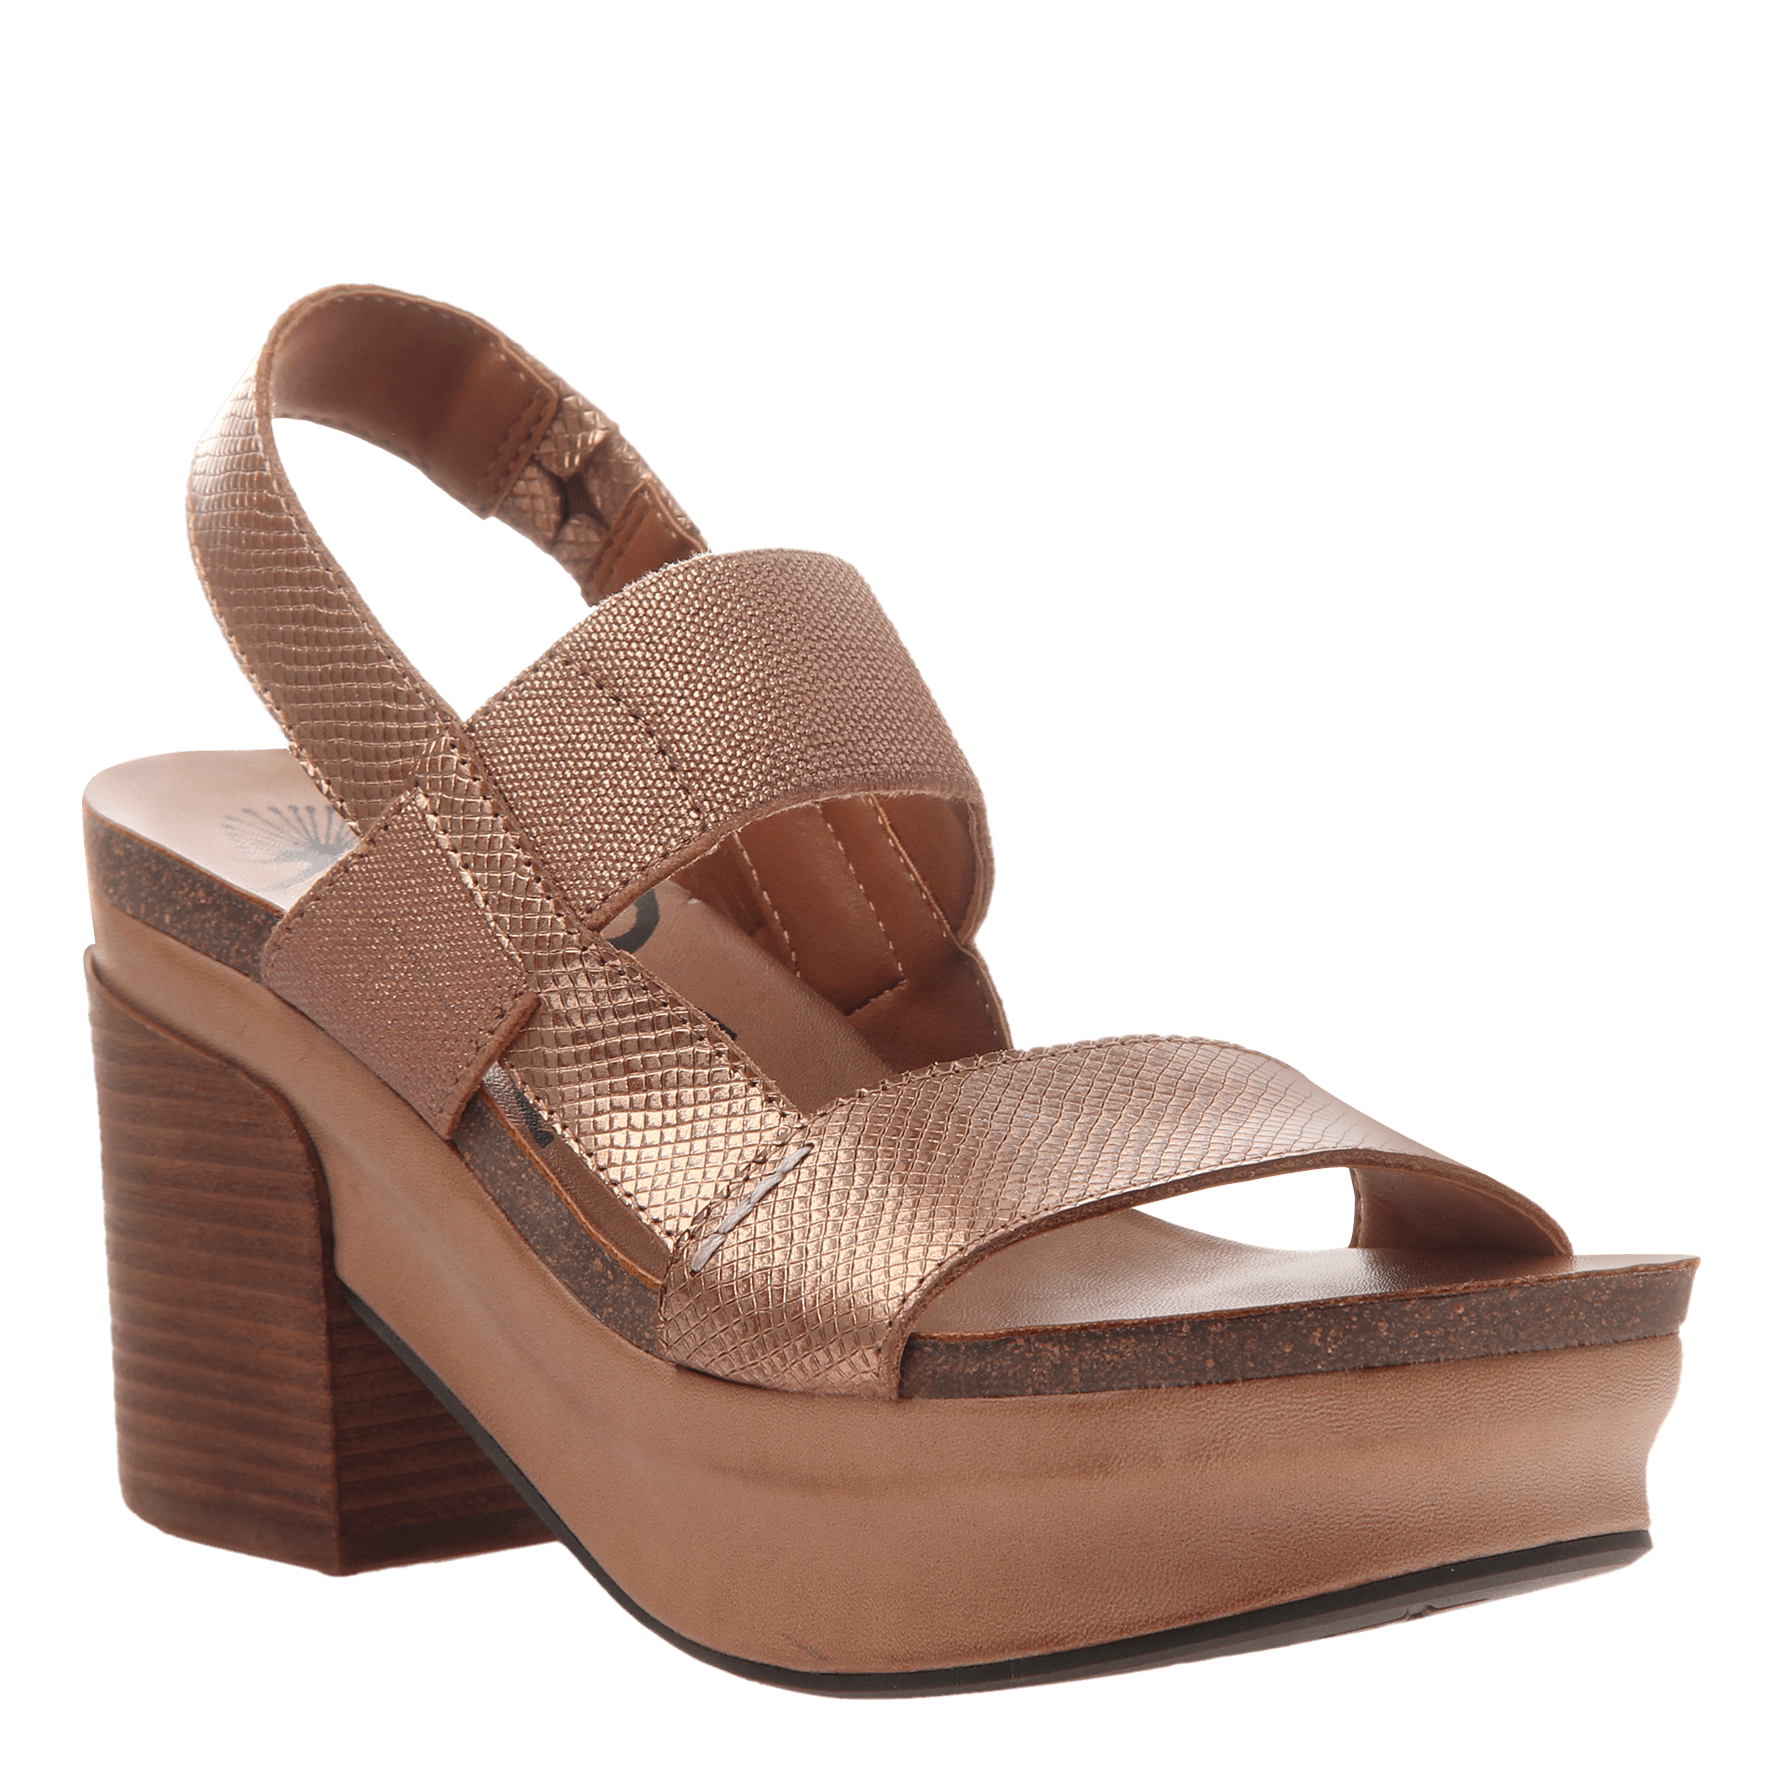 Indio stacked heel in copper